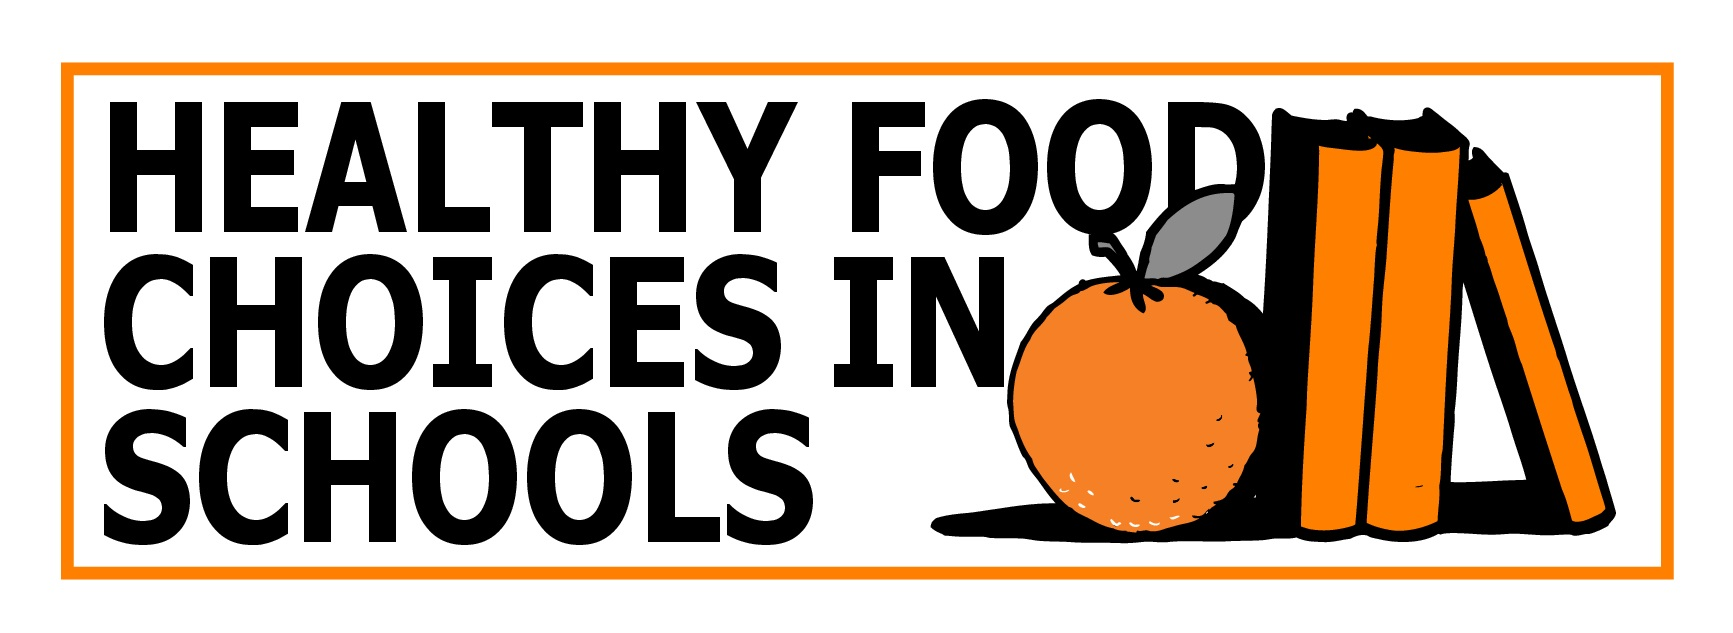 Healthy Food School Choices logo